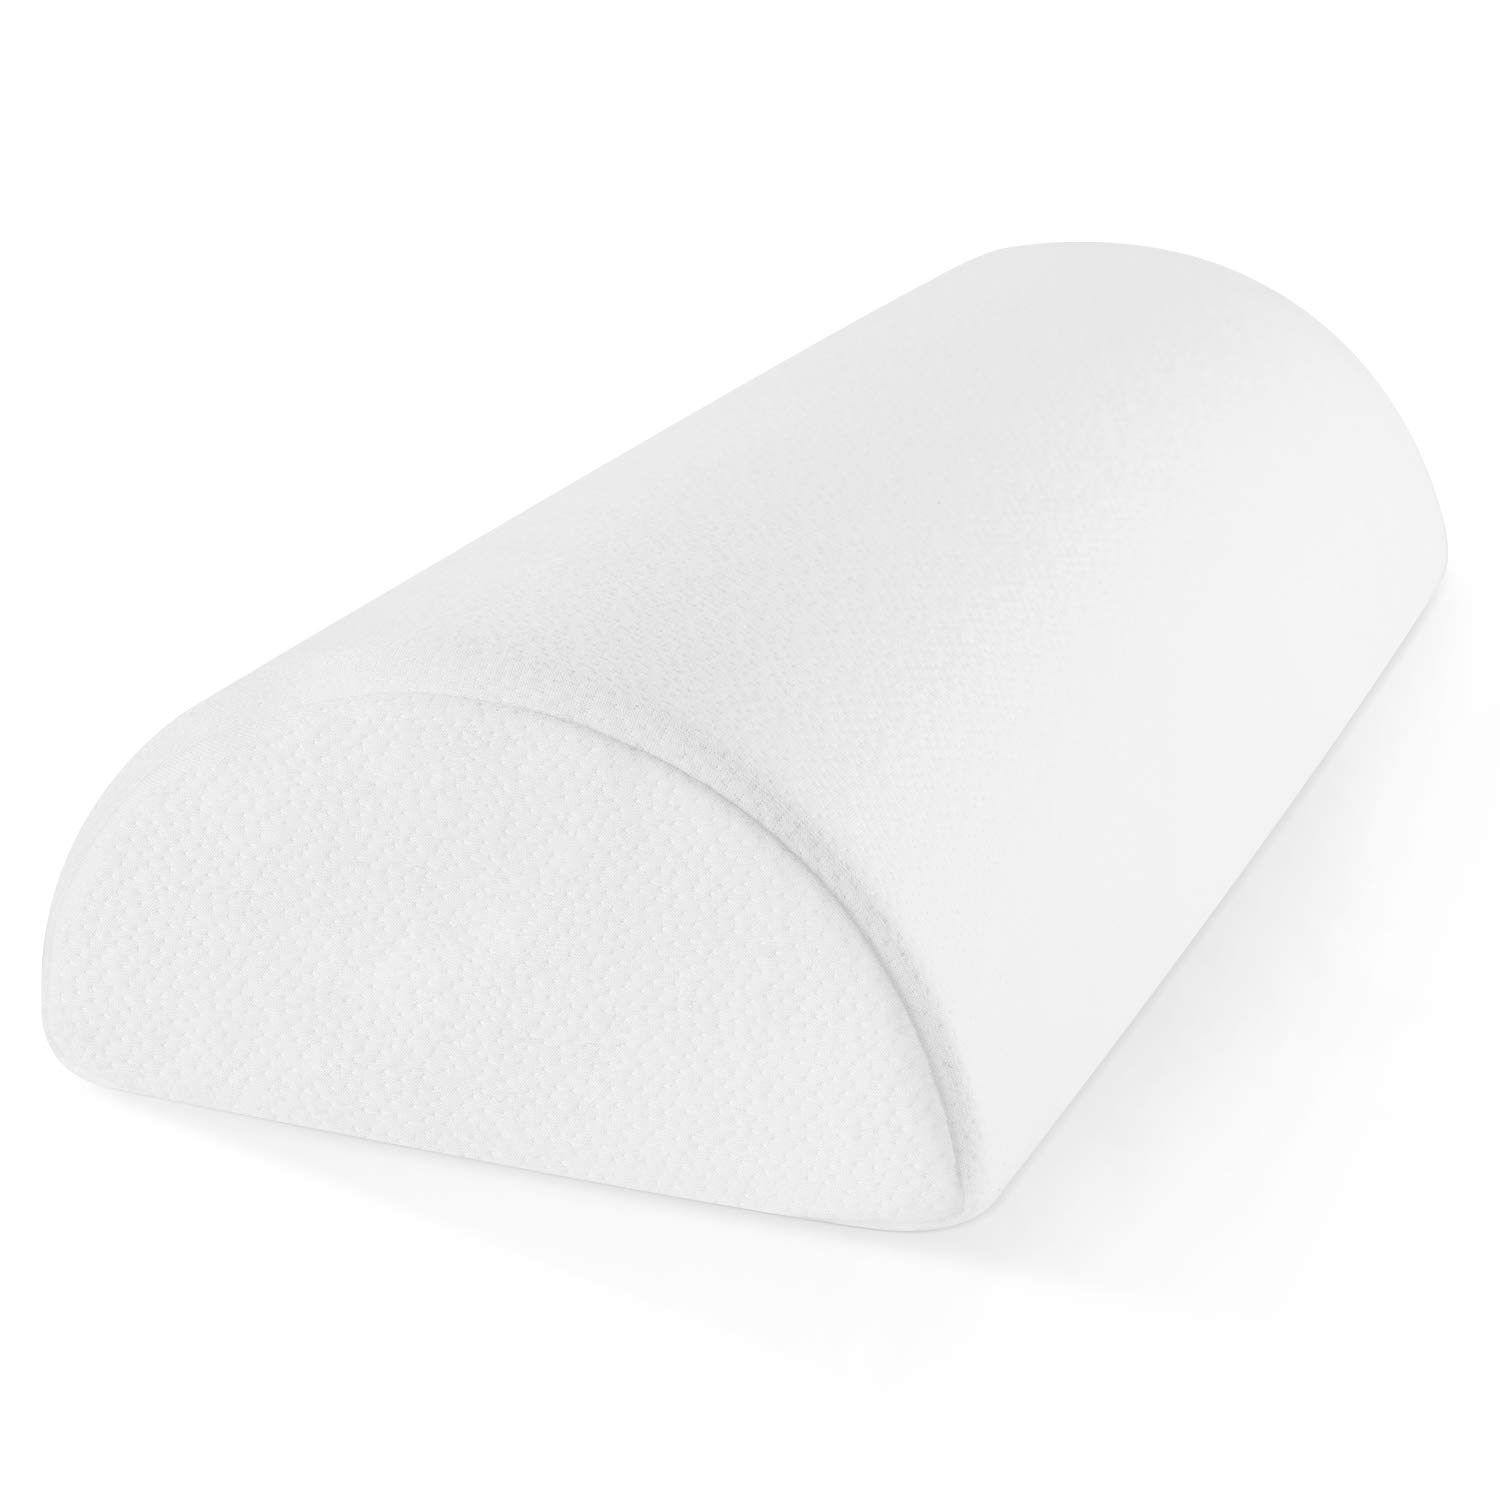 Zen Bamboo Memory Foam Half-Moon Bolster for Back and Knee Pain Relief - Wedge Pillow Provides Ultimate Support for Side and Back Sleepers - Semi Roll Pillow, Ultra-Soft, Washable Bamboo Blend Cover  by Zen Bamboo